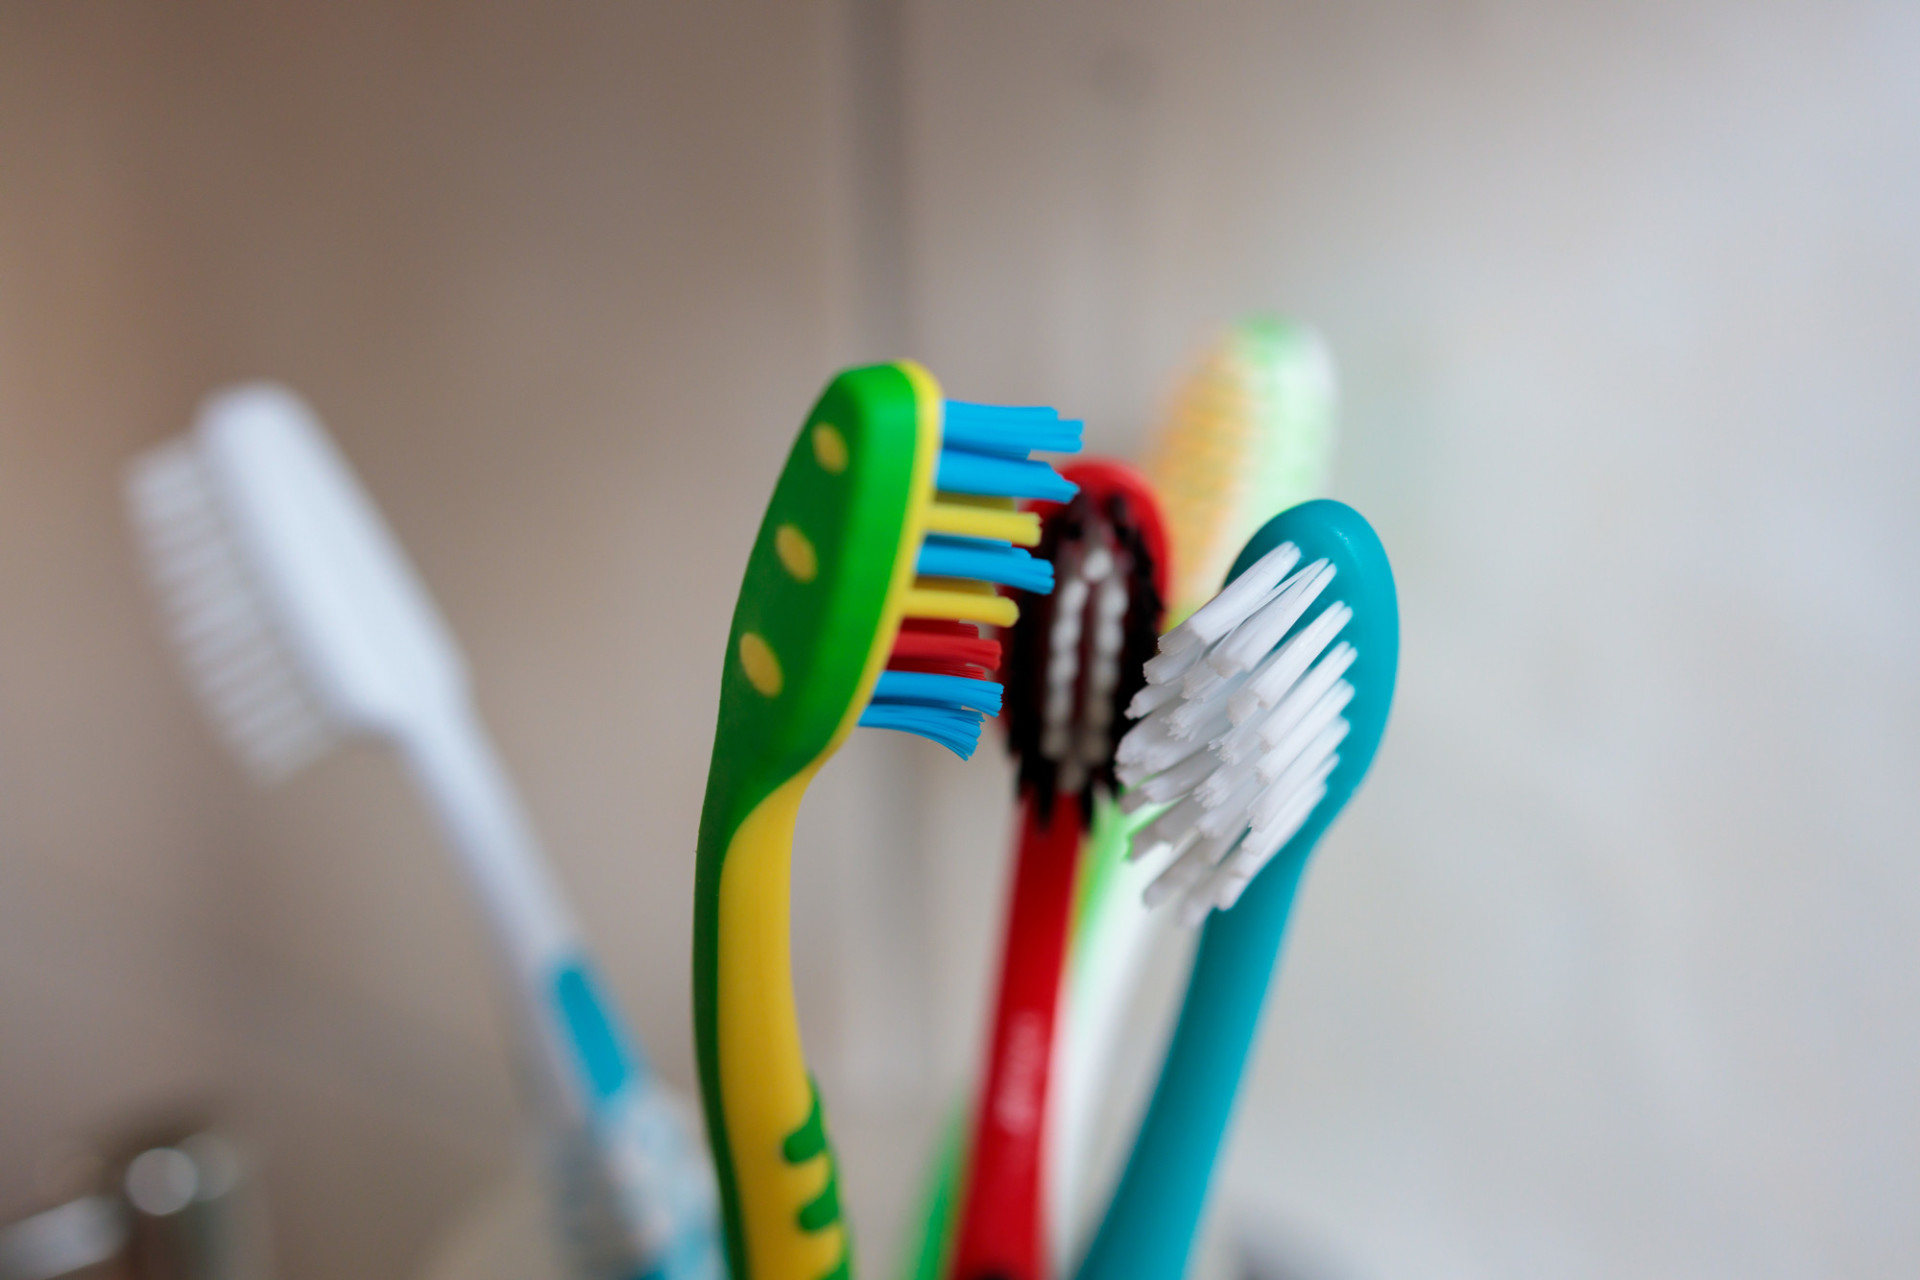 Toothbrushes of a small family